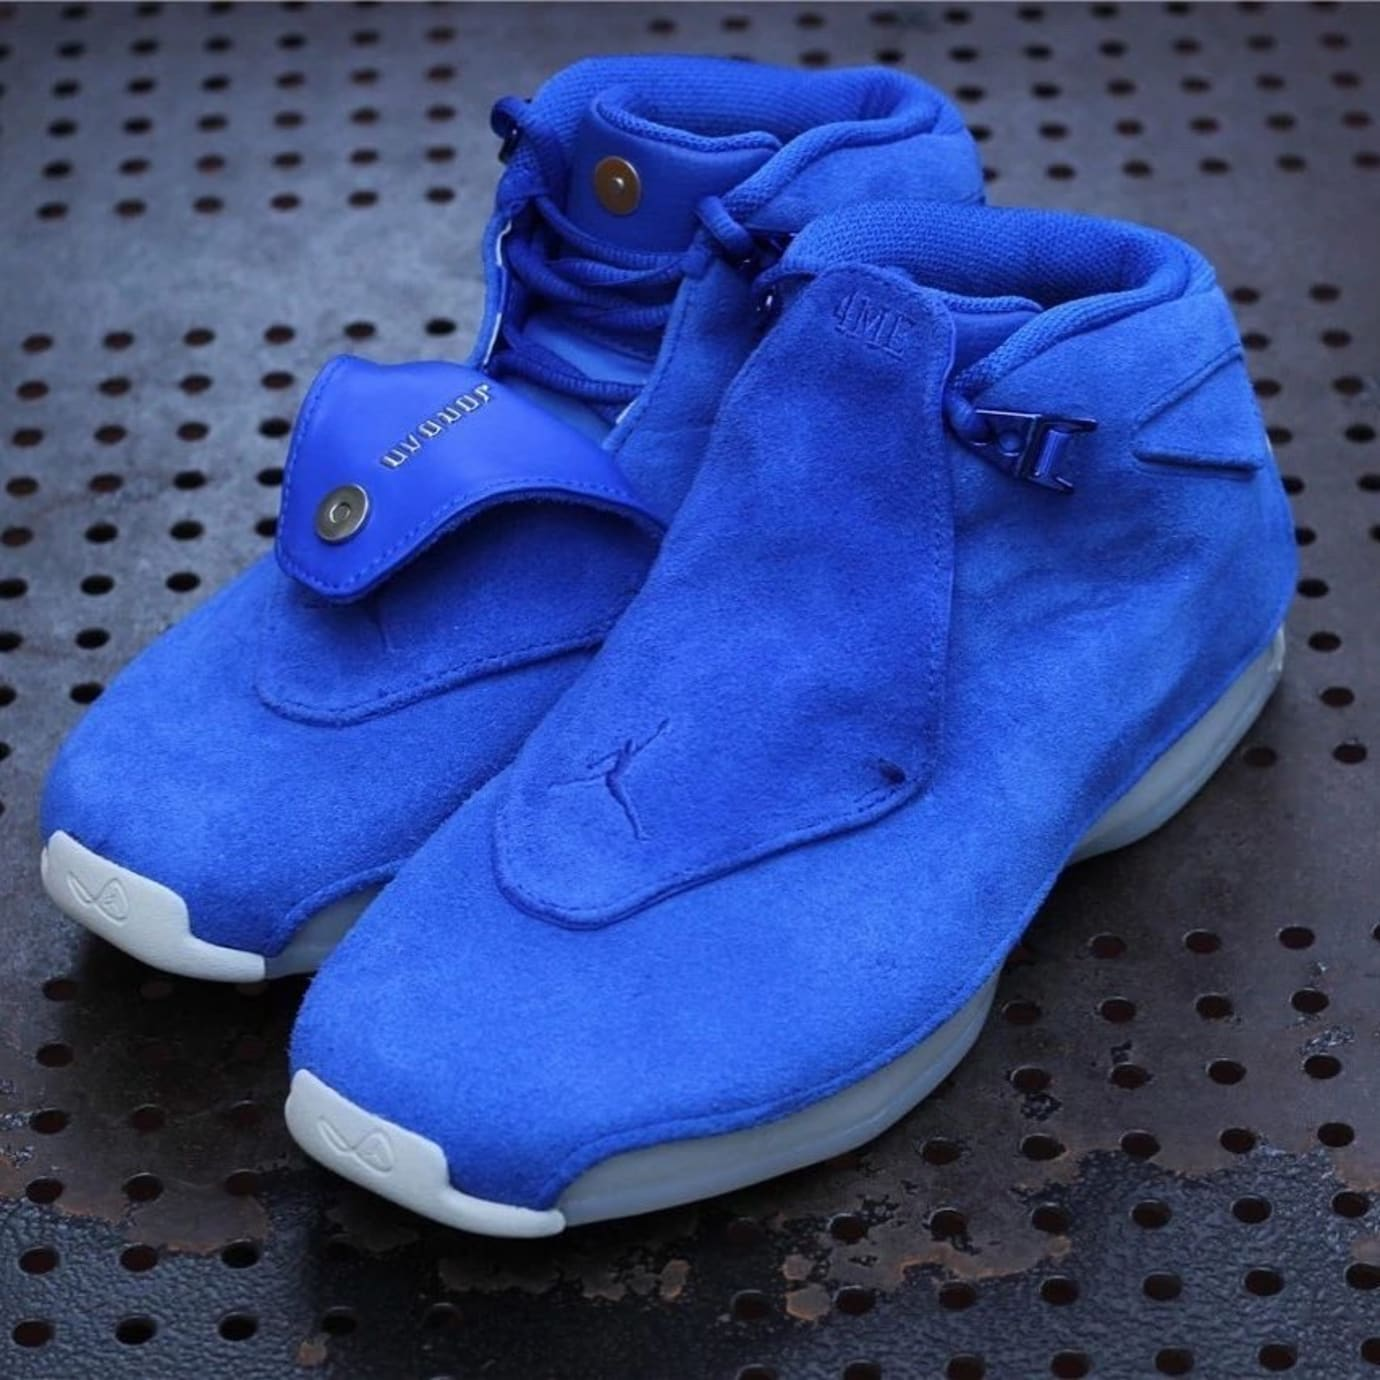 3c4bad92ae8f Air Jordan 18 Blue Suede Release Date Front